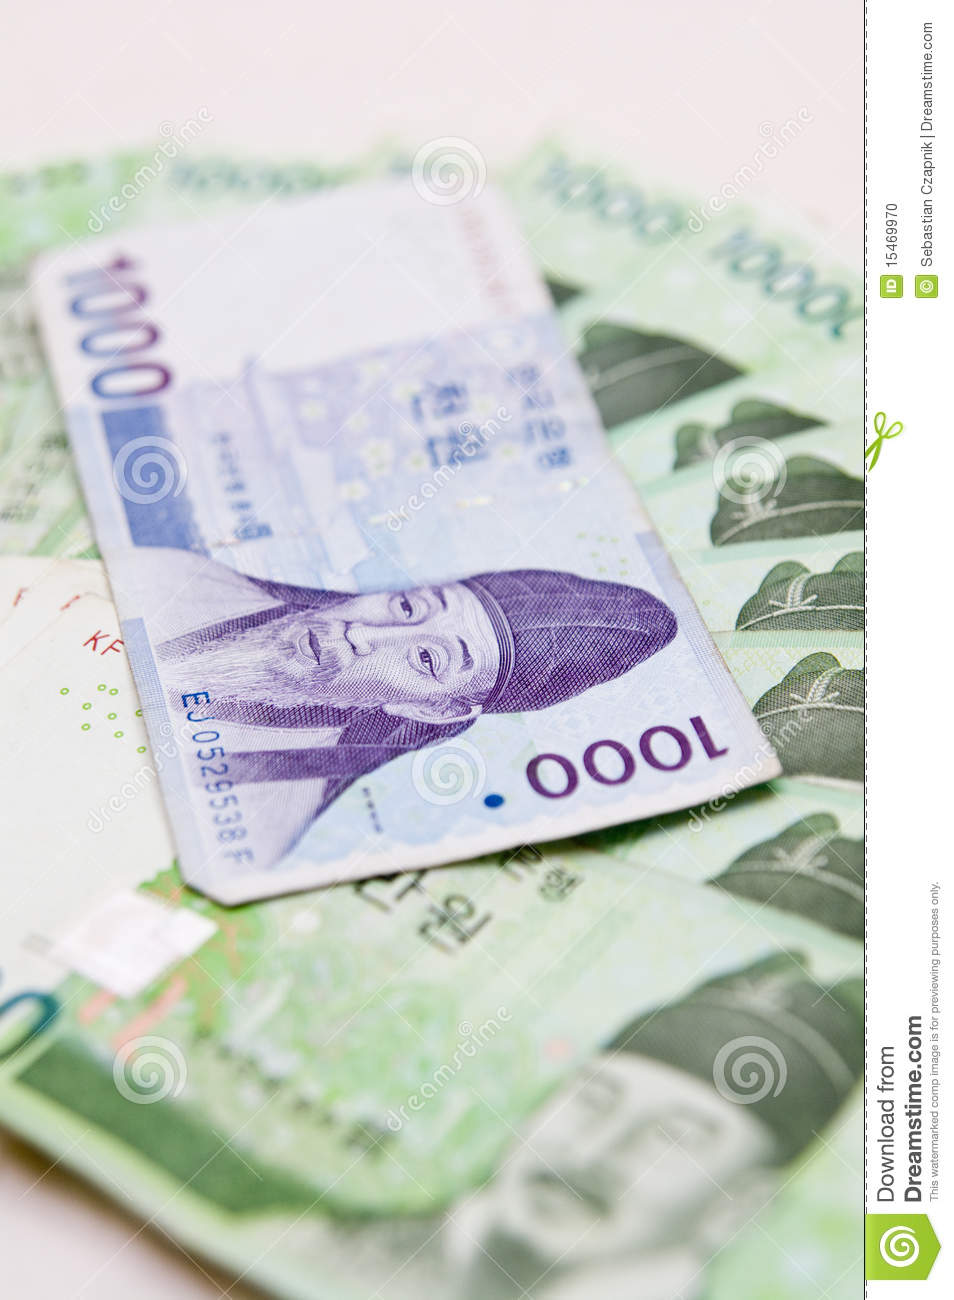 South korea currency stock photo image of korea cash 15469970 south korea currency buycottarizona